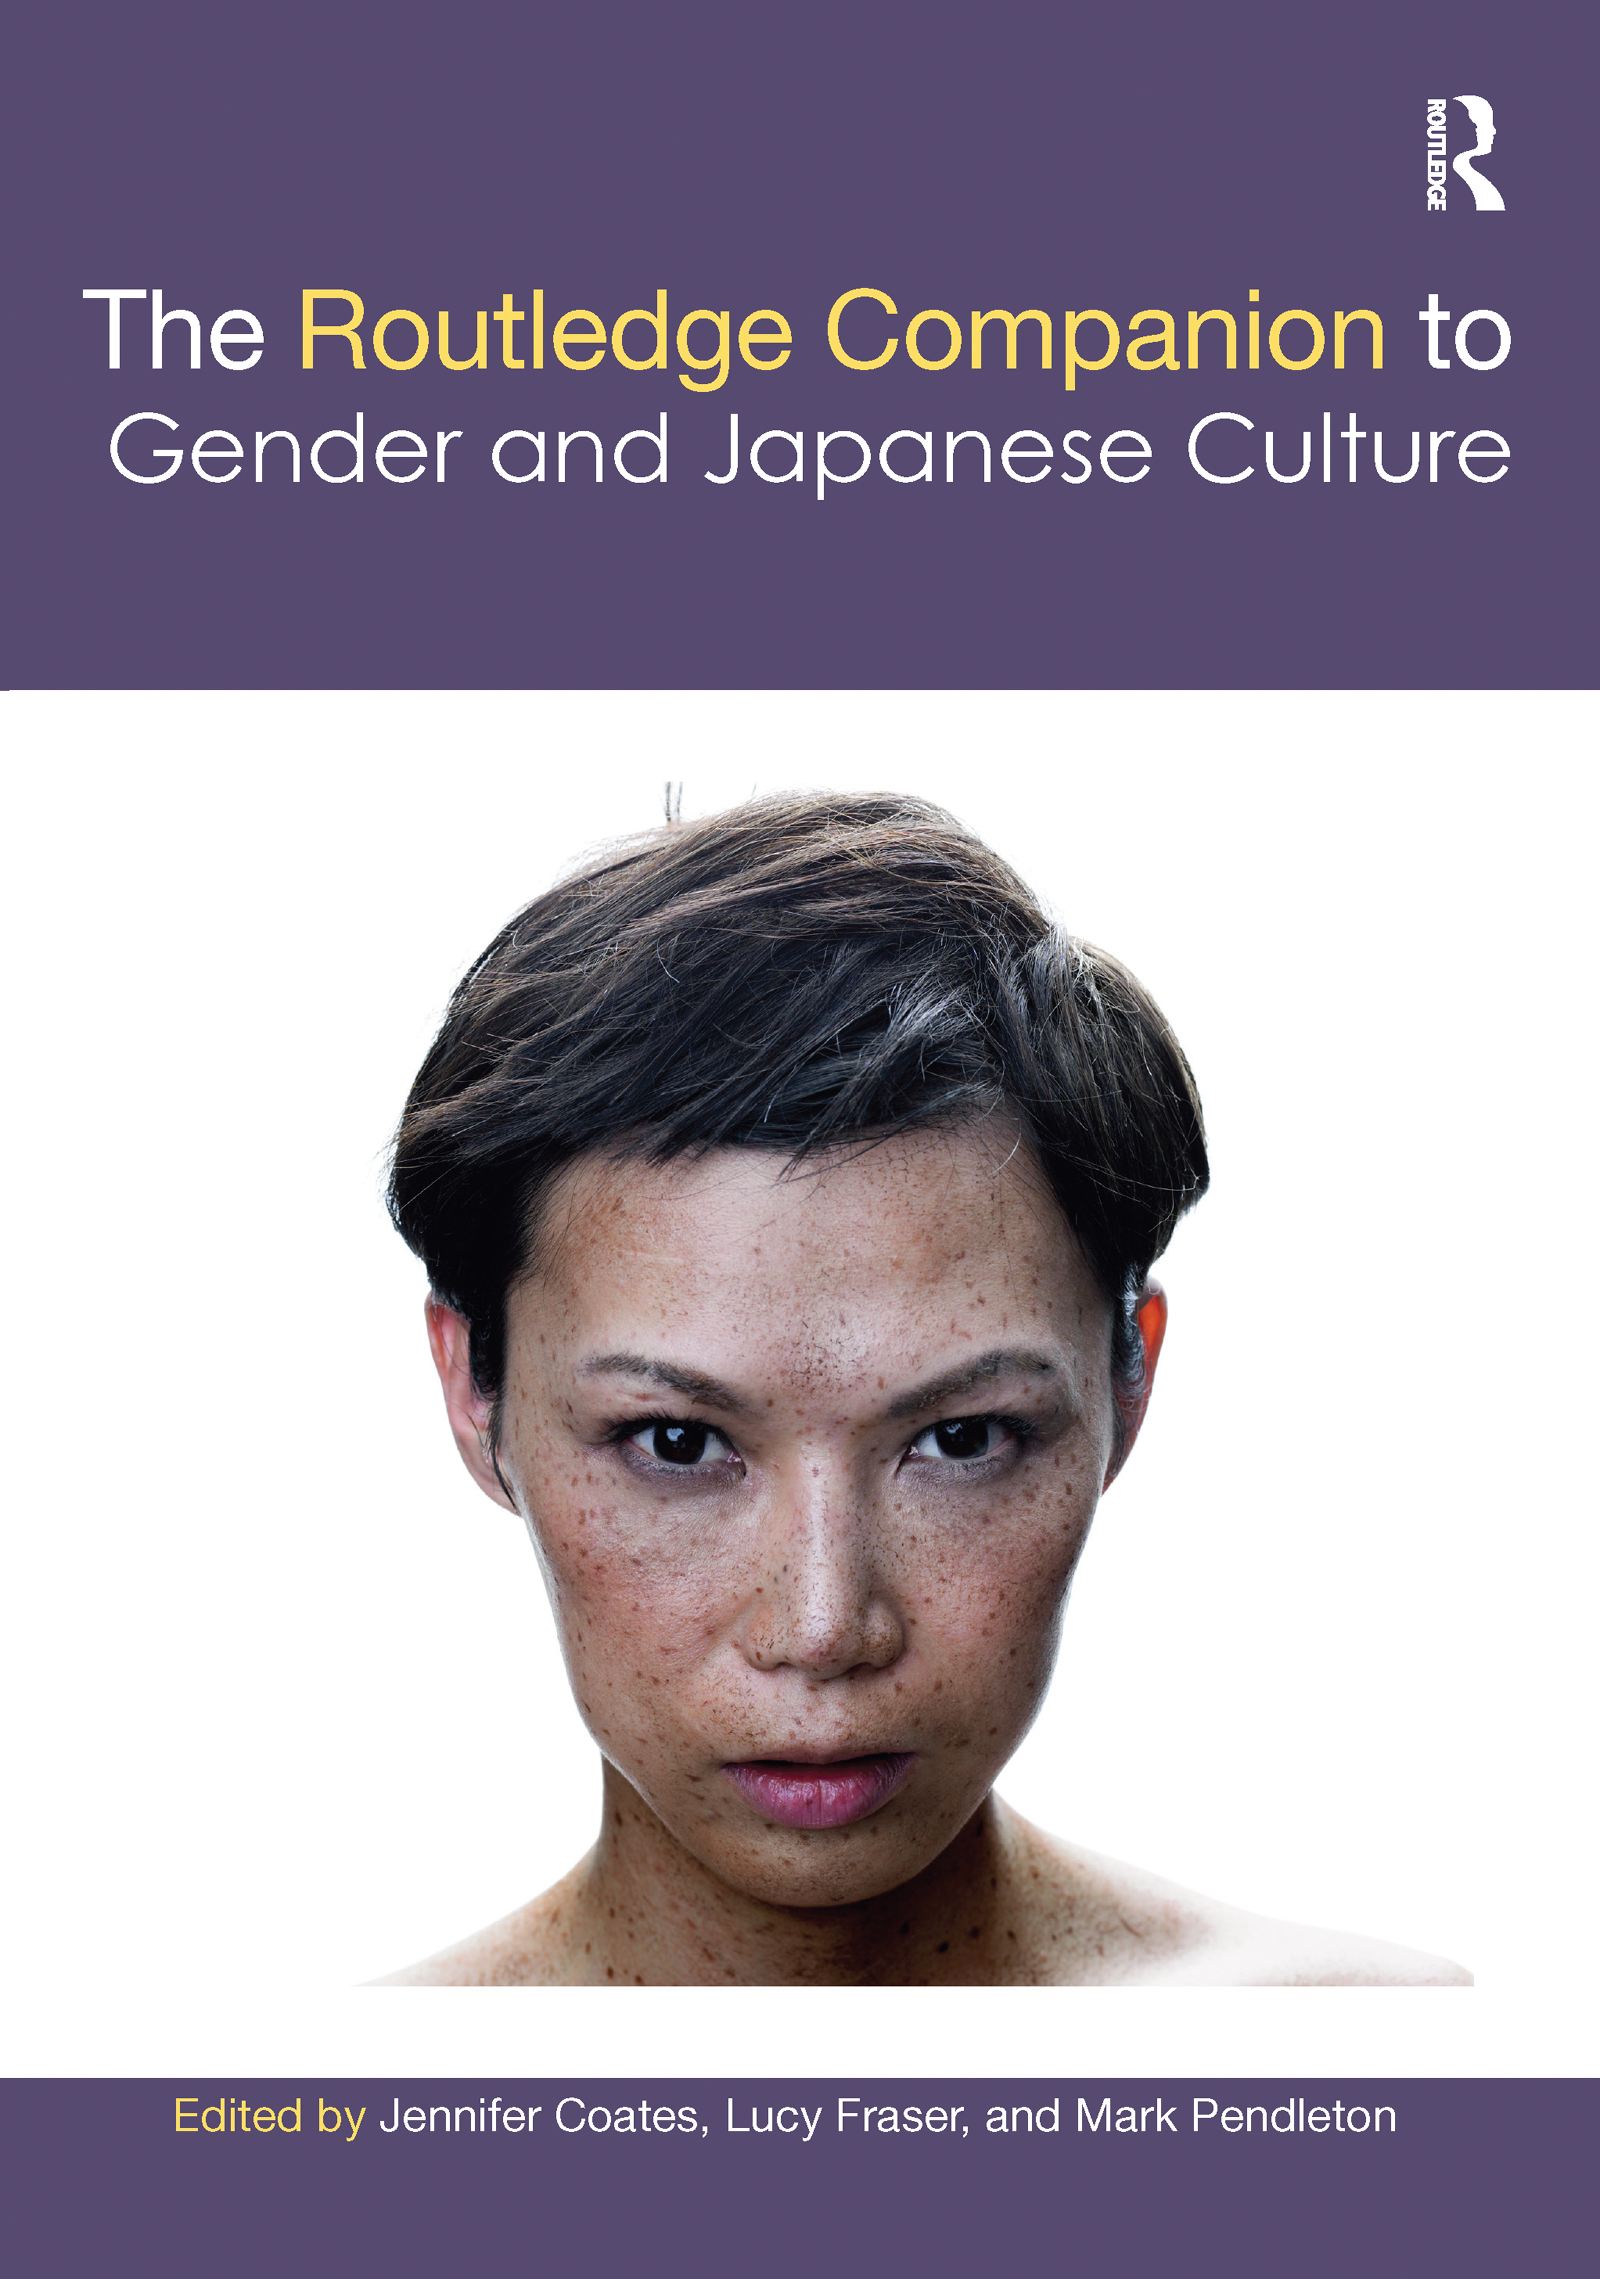 The Routledge Companion to Gender and Japanese Culture